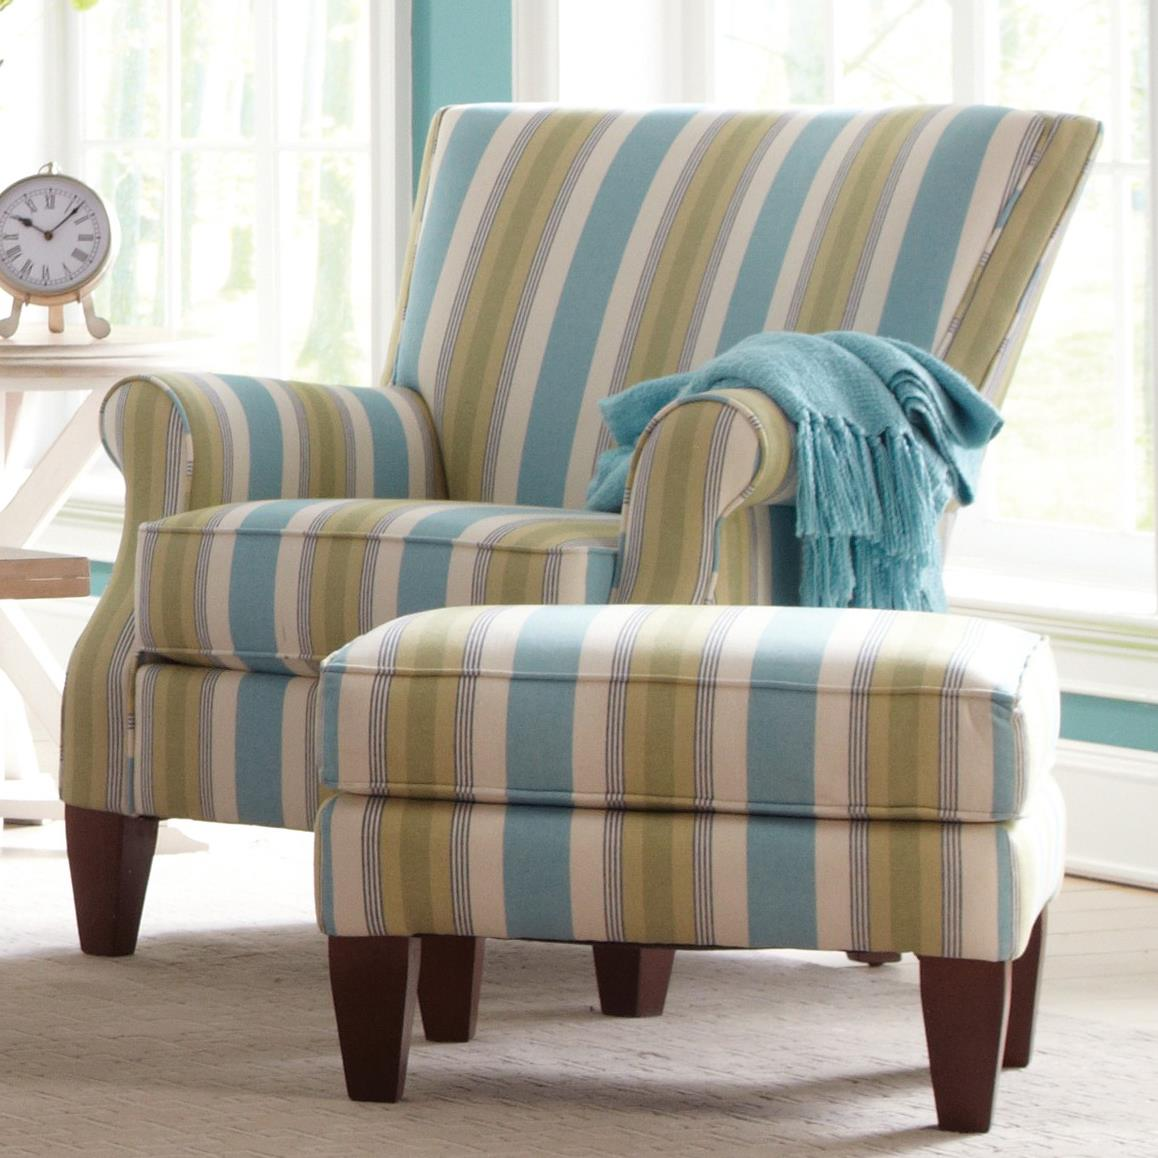 Contempory Chairs: Contemporary Chair And Ottoman Set By Craftmaster